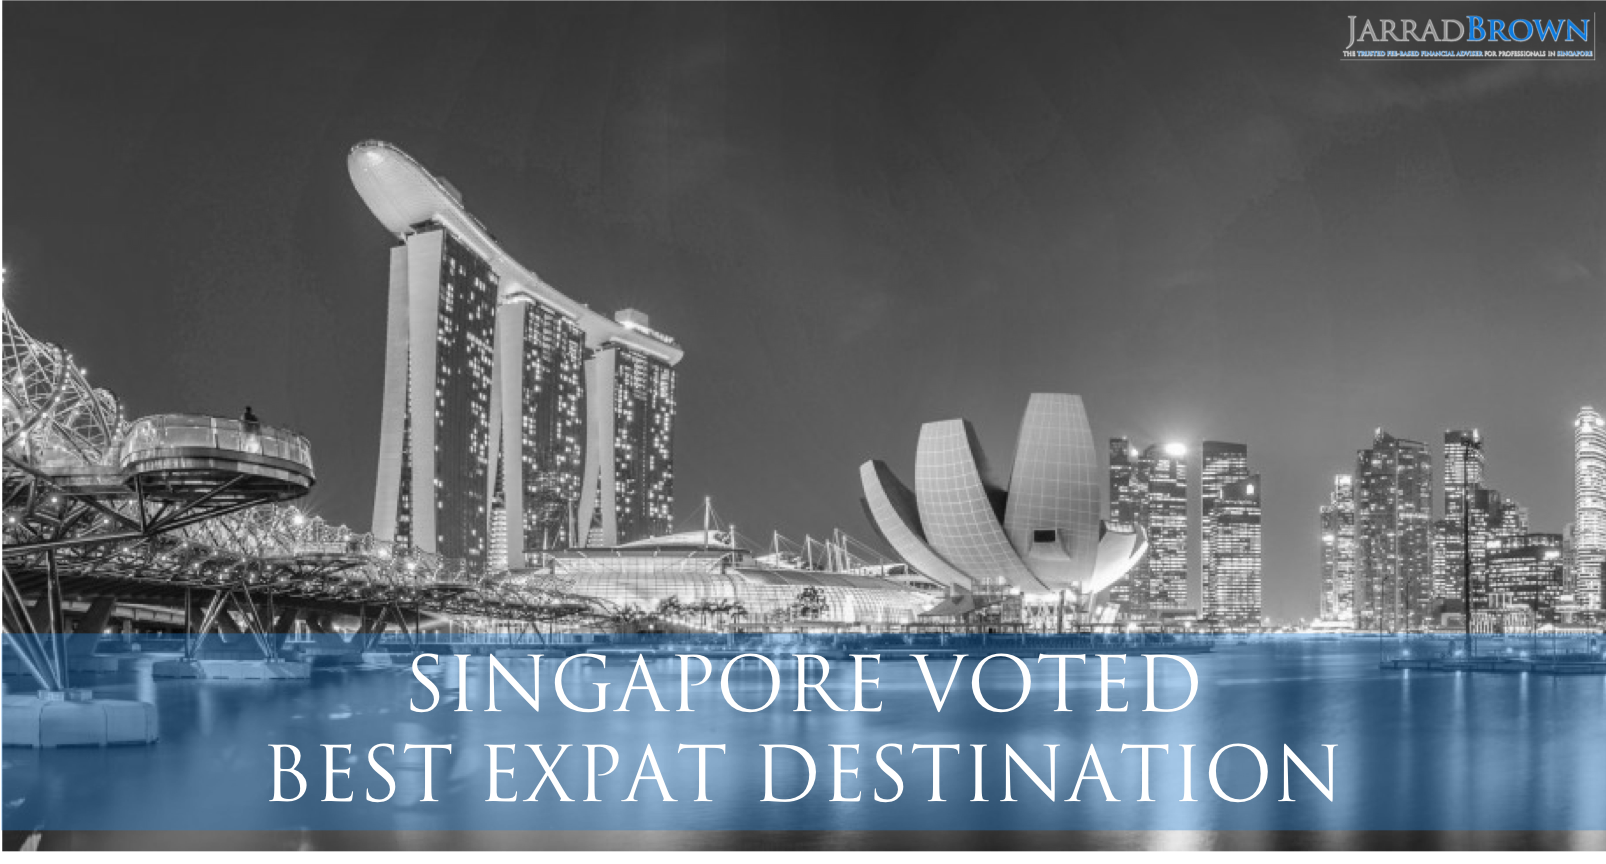 Singapore Voted Best Expat Destination - Jarrad Brown - Financial Planner to Aussie Expats in Singapore